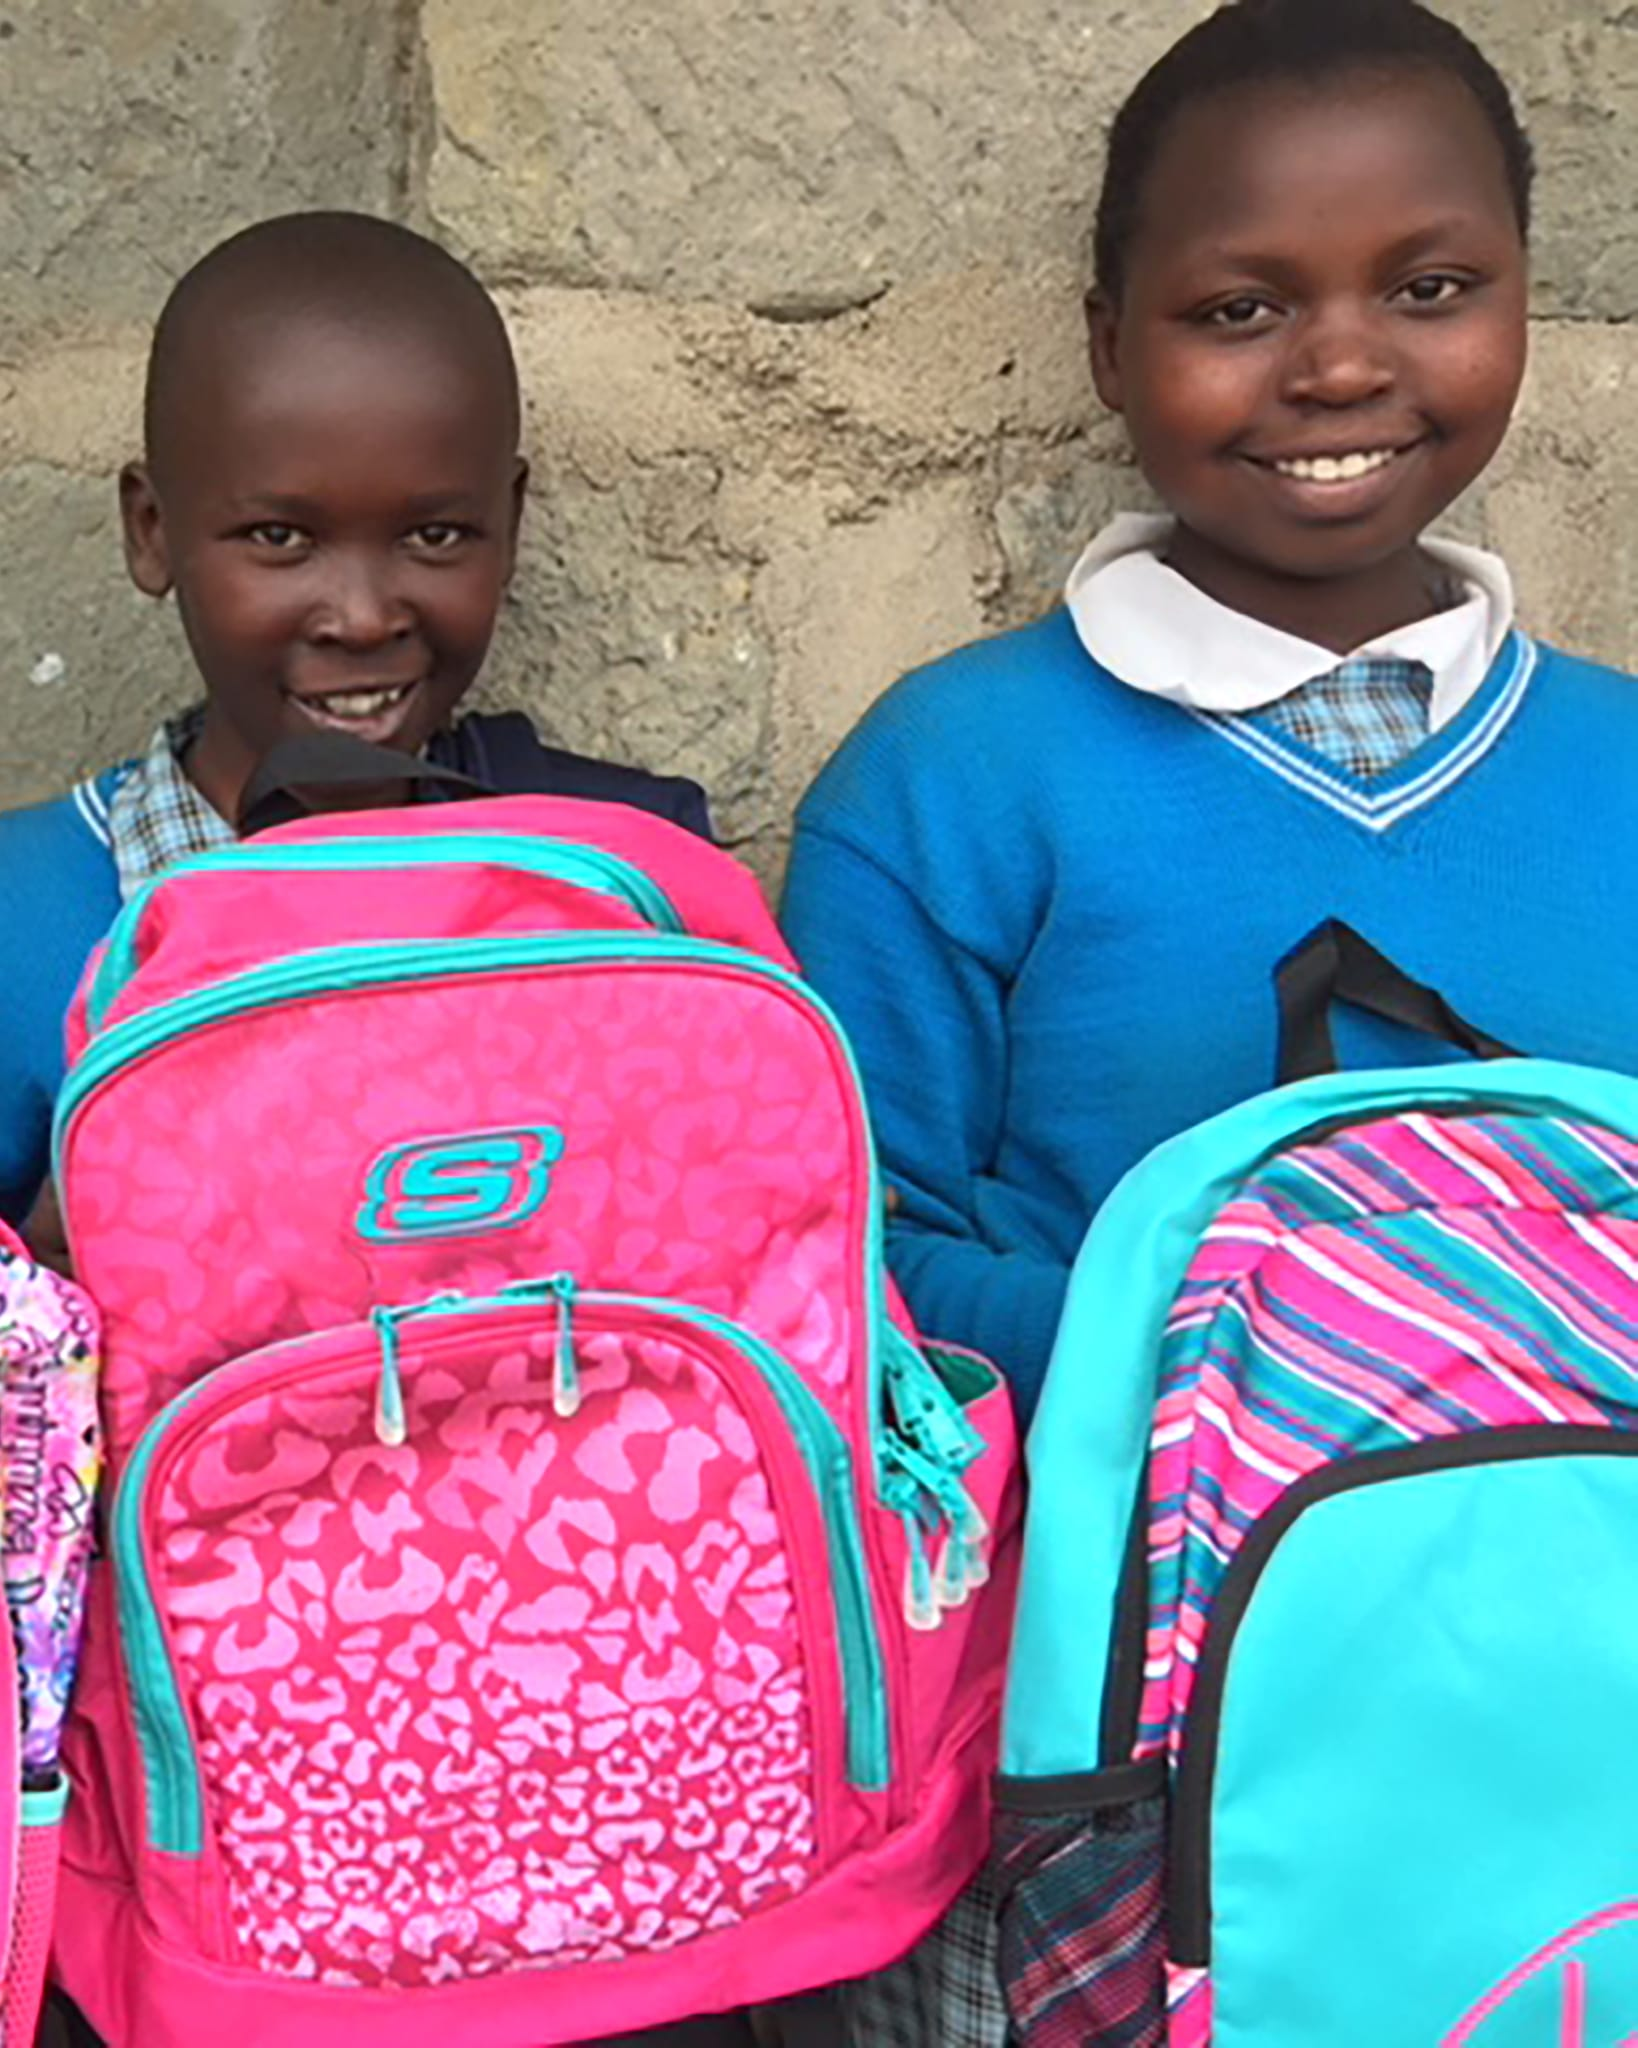 School children receiving book bags donated by the Dawn Brancheau Foundation in loving memory of Dawn.